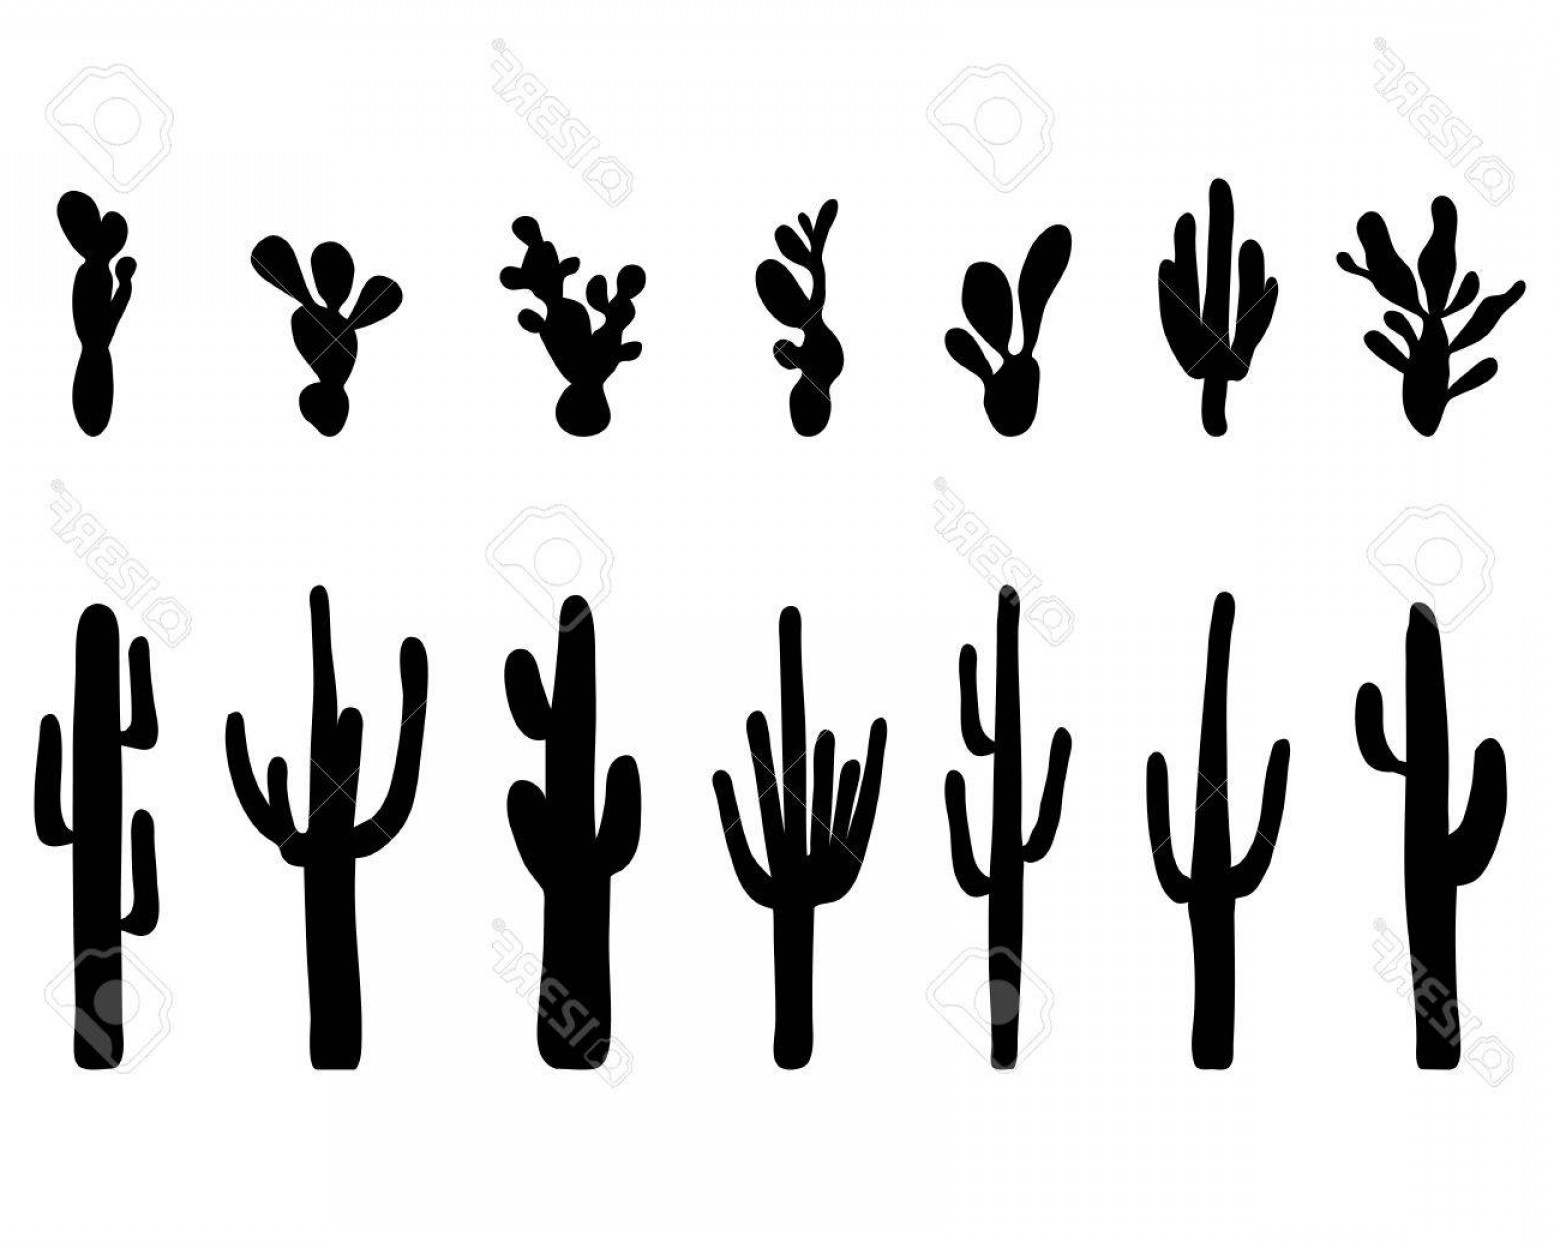 1560x1248 Photostock Vector Black Silhouettes Of Different Cactus Vector